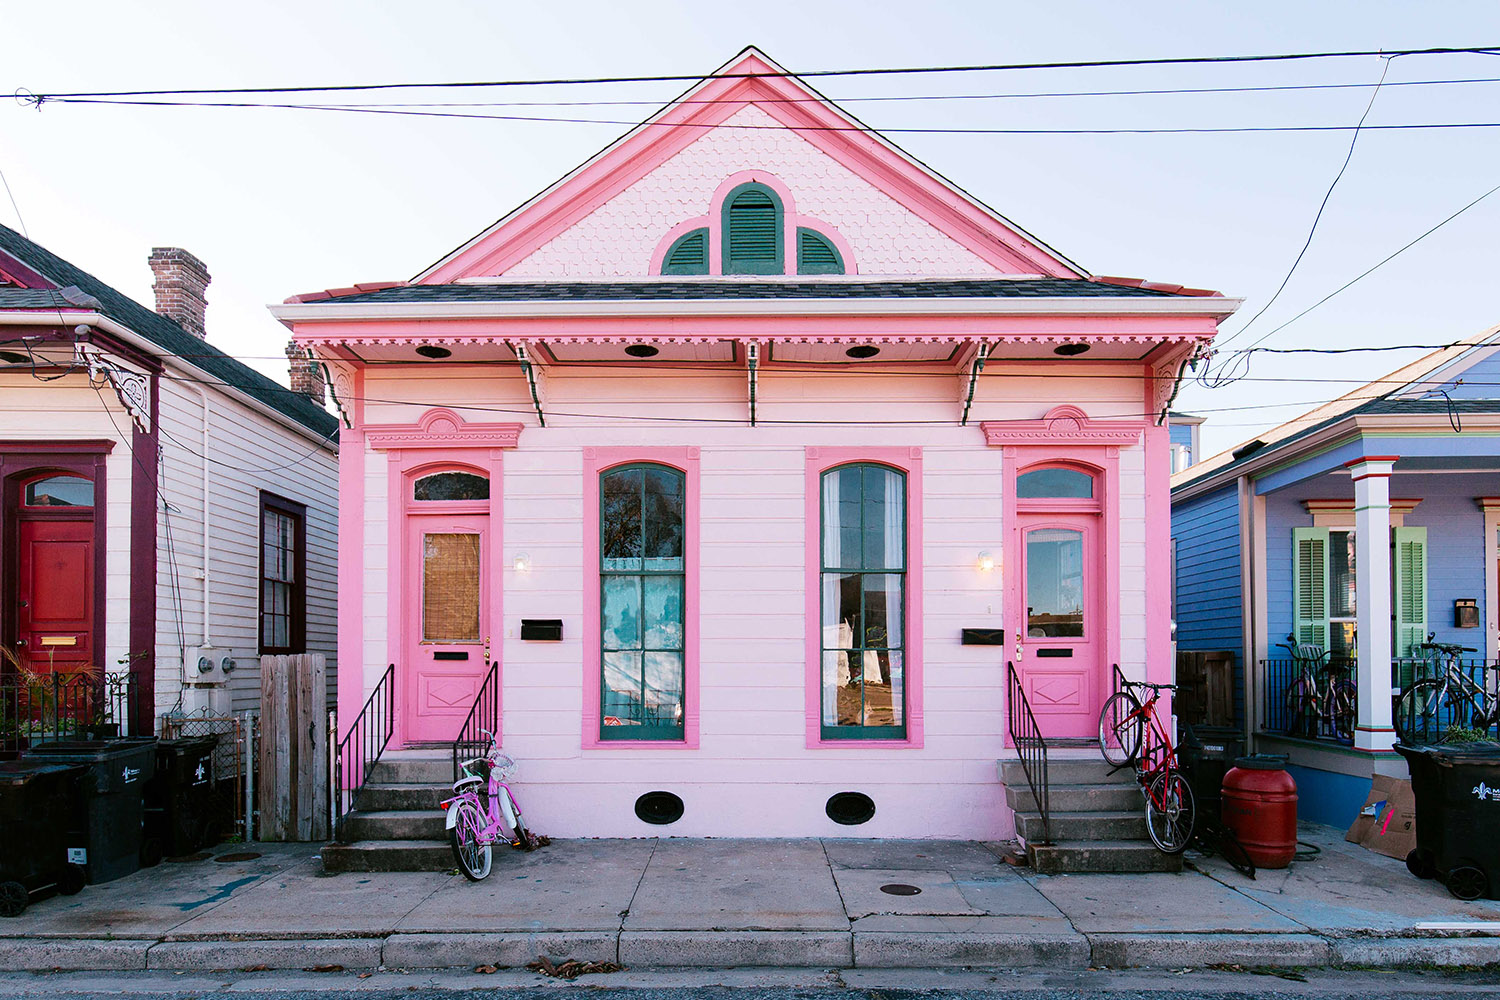 The Most Colorful Houses in the South - Southern Living